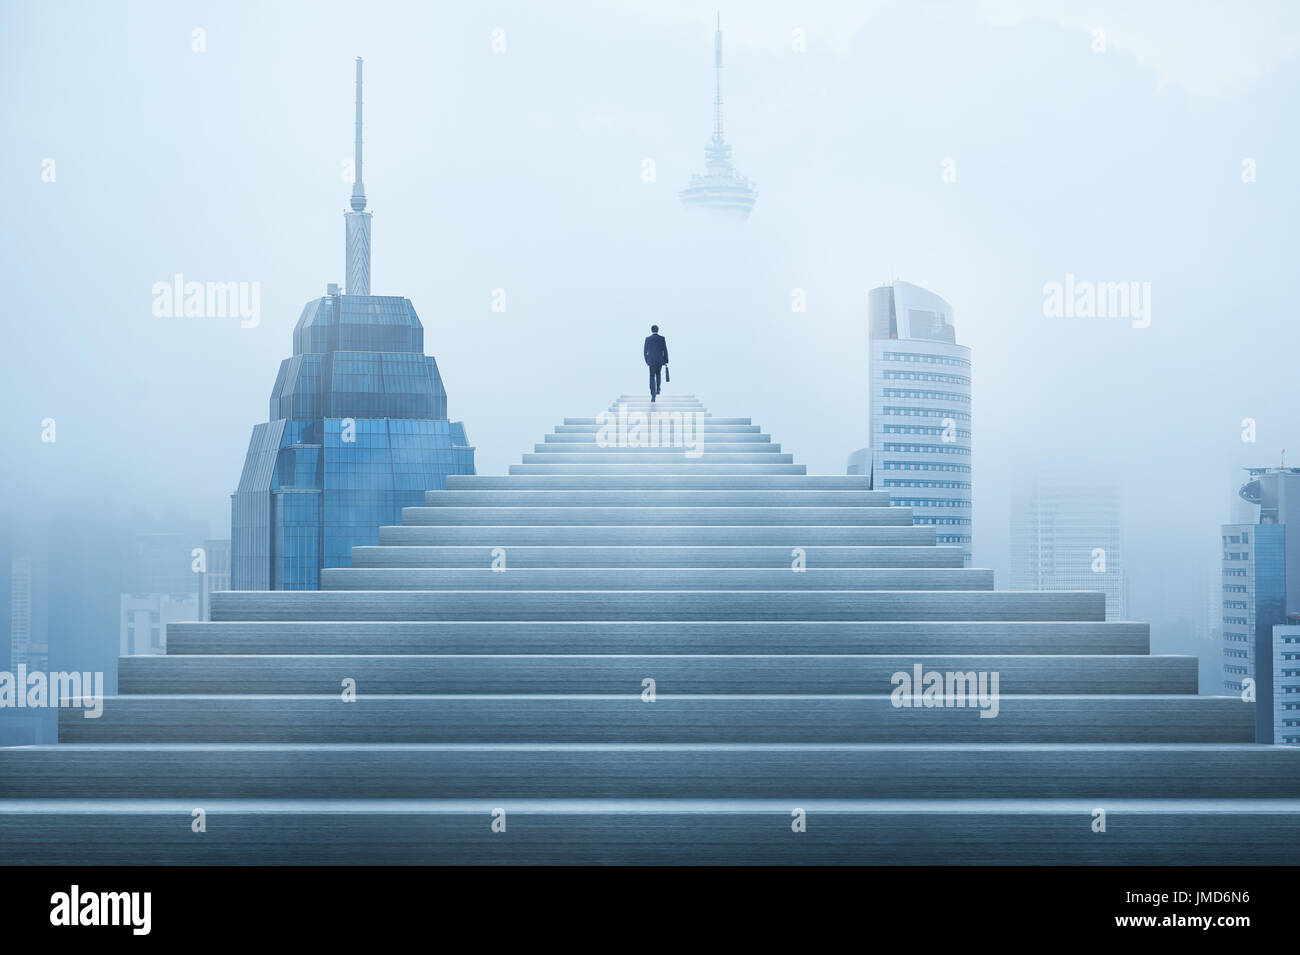 Ambitions concept with businessman climbing stairs - Stock Image